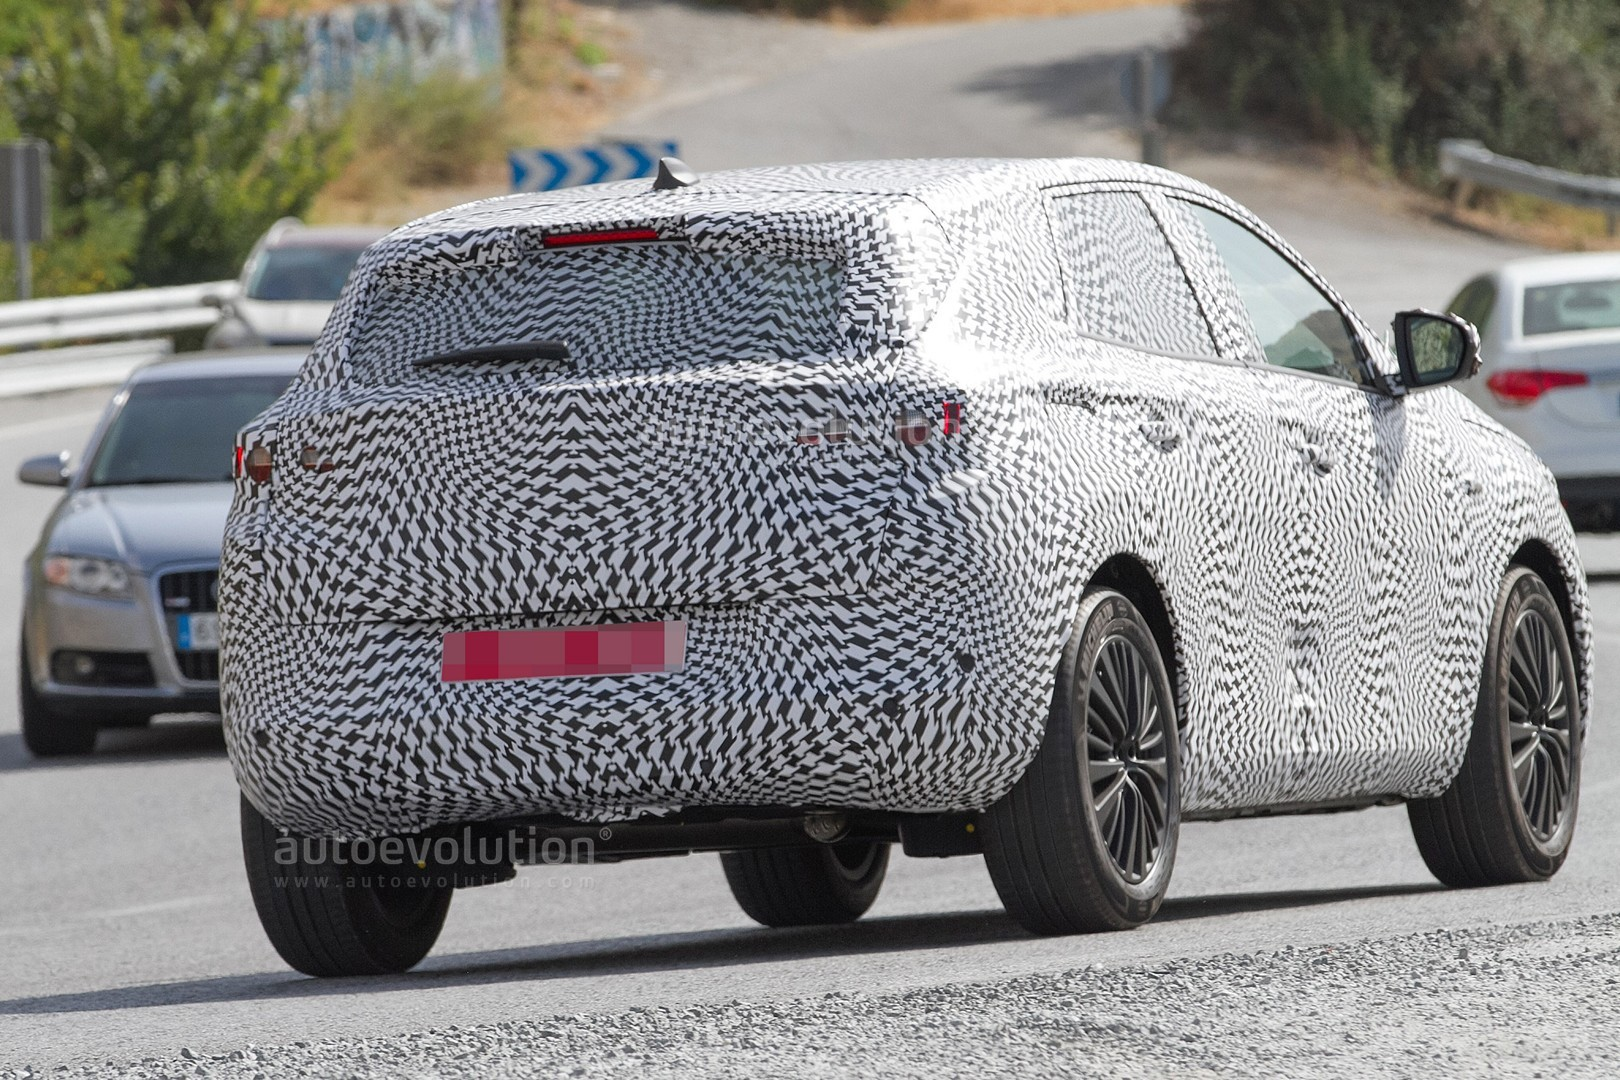 How To Replace Battery >> Spyshots: 2018 Peugeot 2008 Spy Photo Debut or Opel C-SUV? - autoevolution